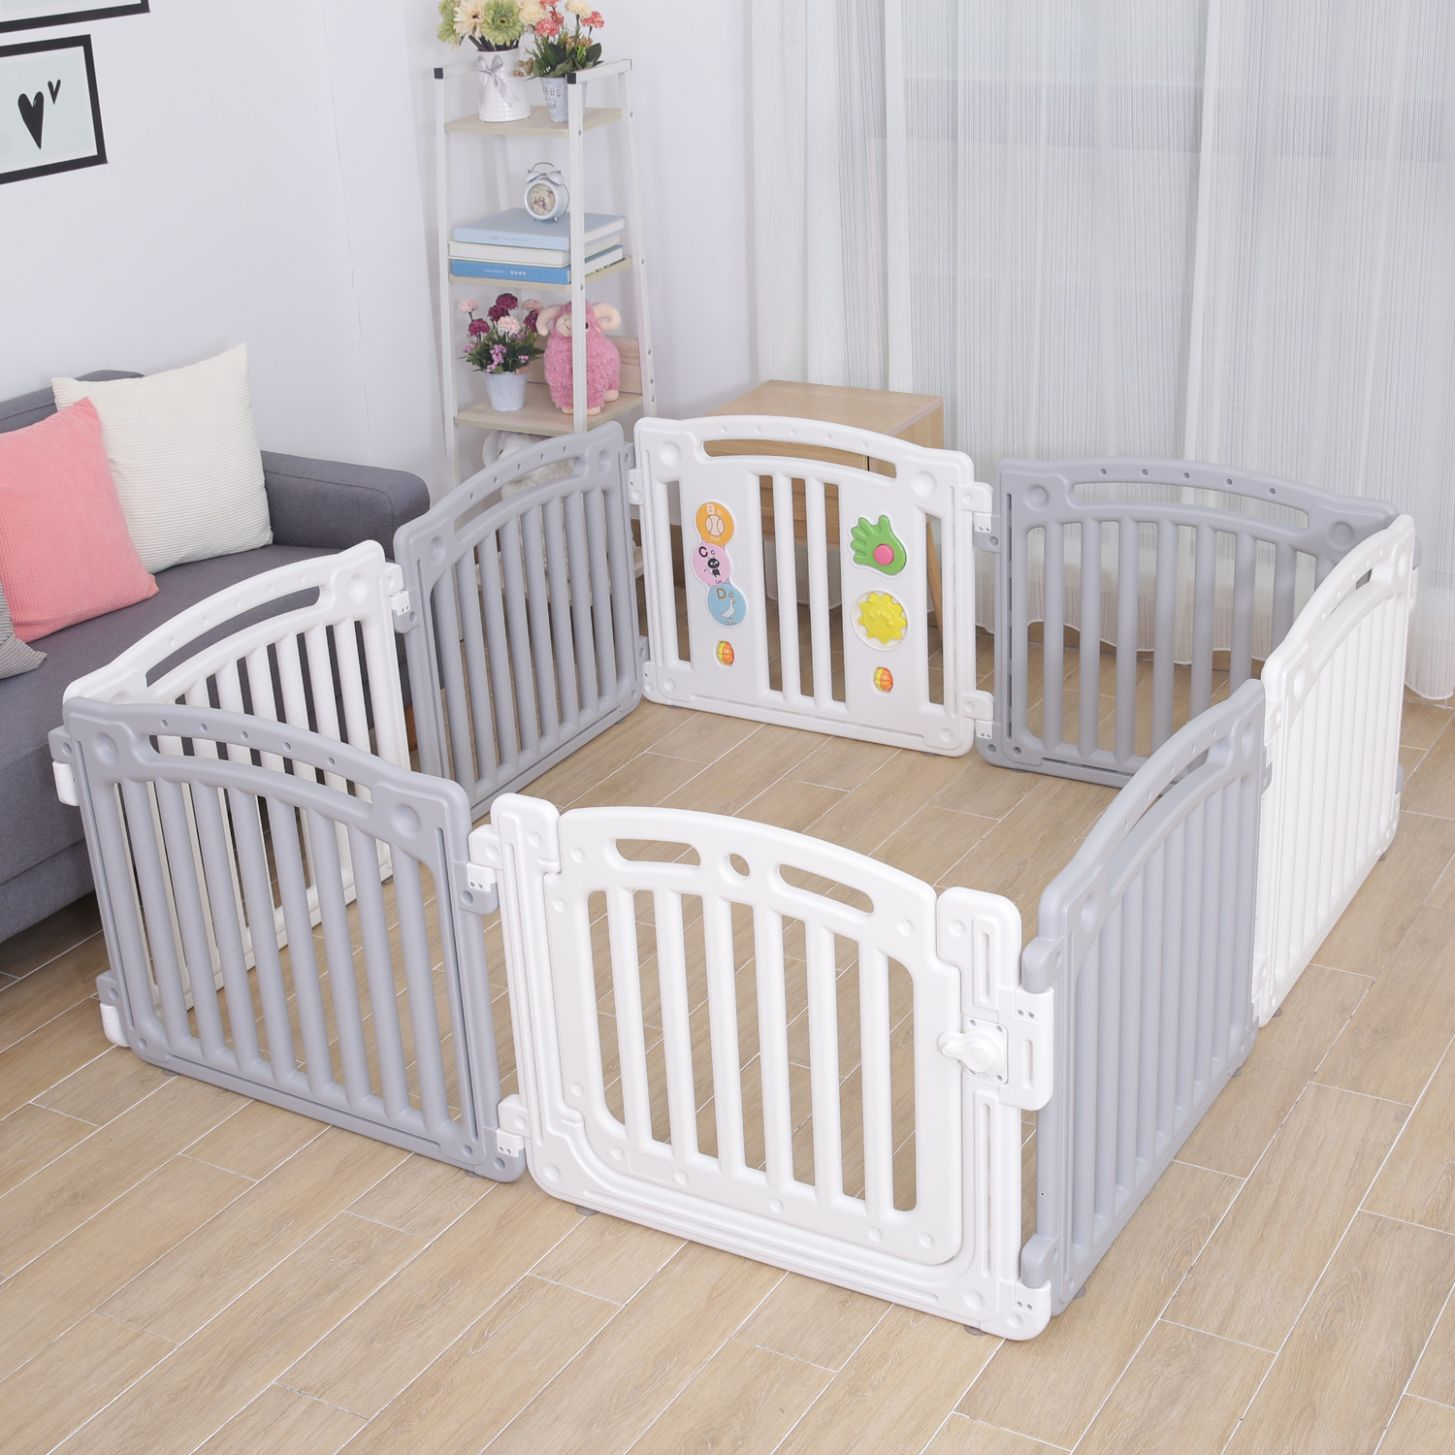 Details about Large 1111 Panels Baby Plastic Playpen Room Divider 1111in11 Play  Gate White/Grey PP11G - baby room divider